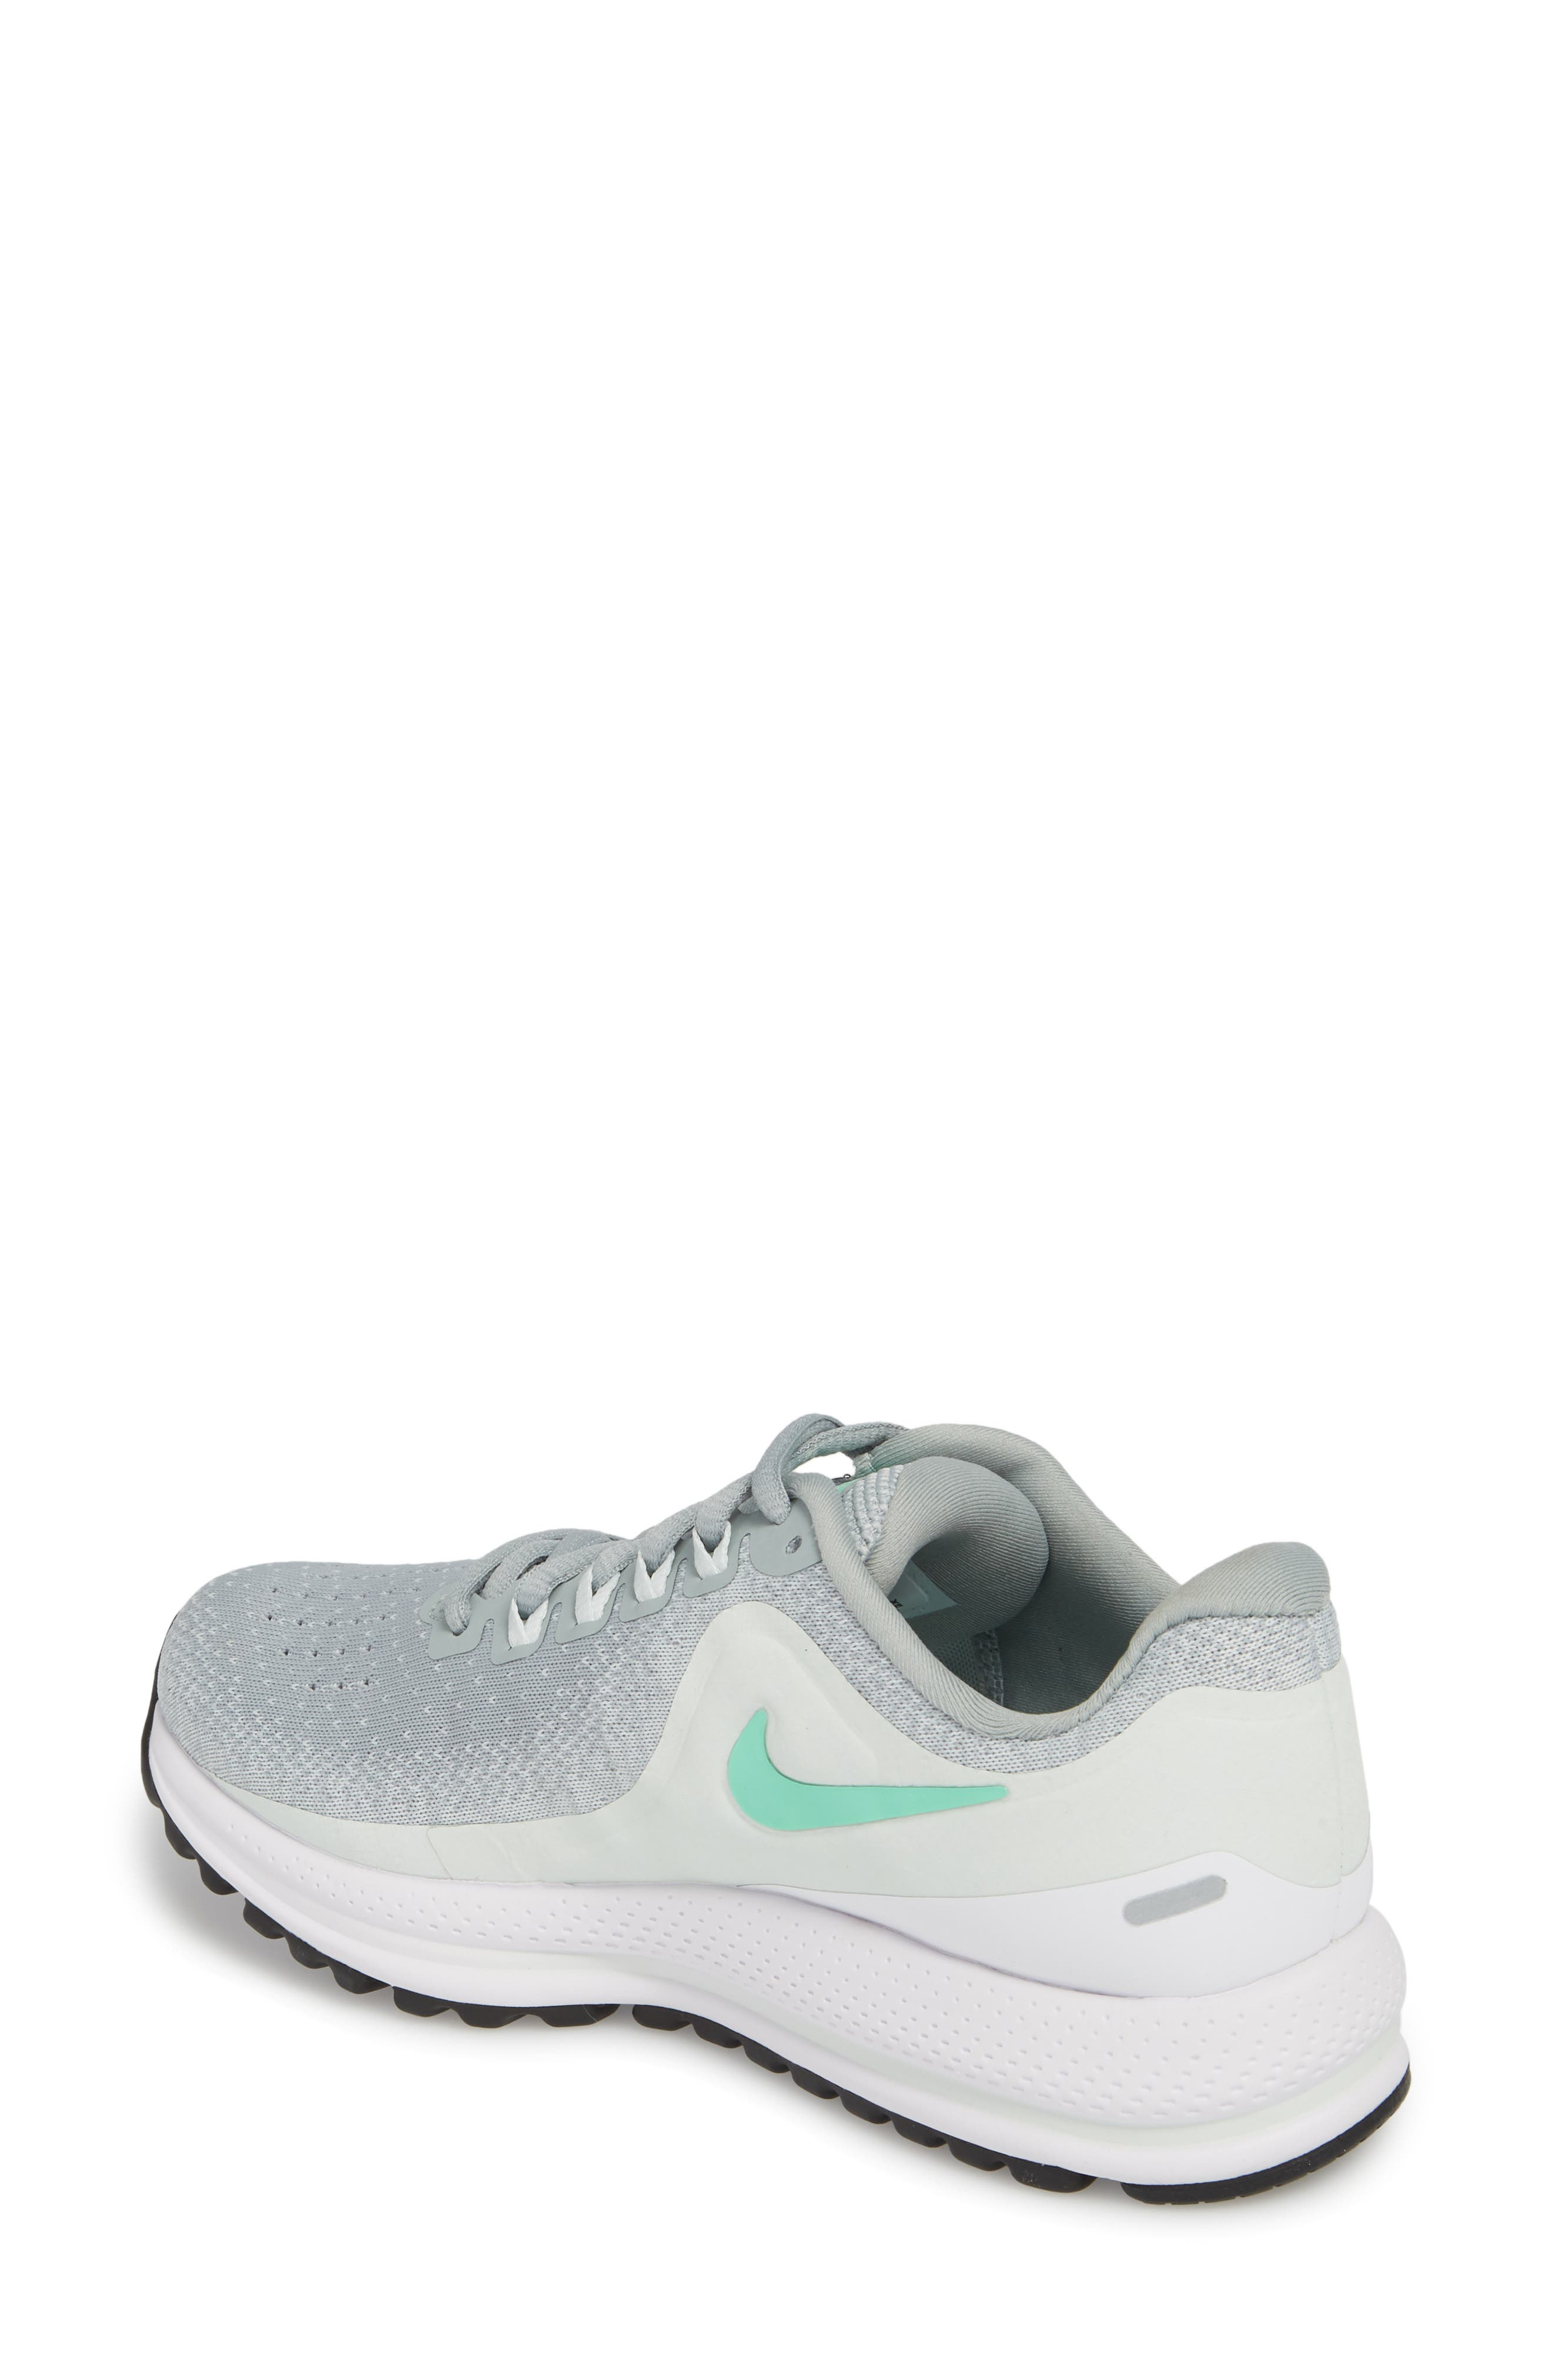 Air Zoom Vomero 13 Running Shoe,                             Alternate thumbnail 16, color,